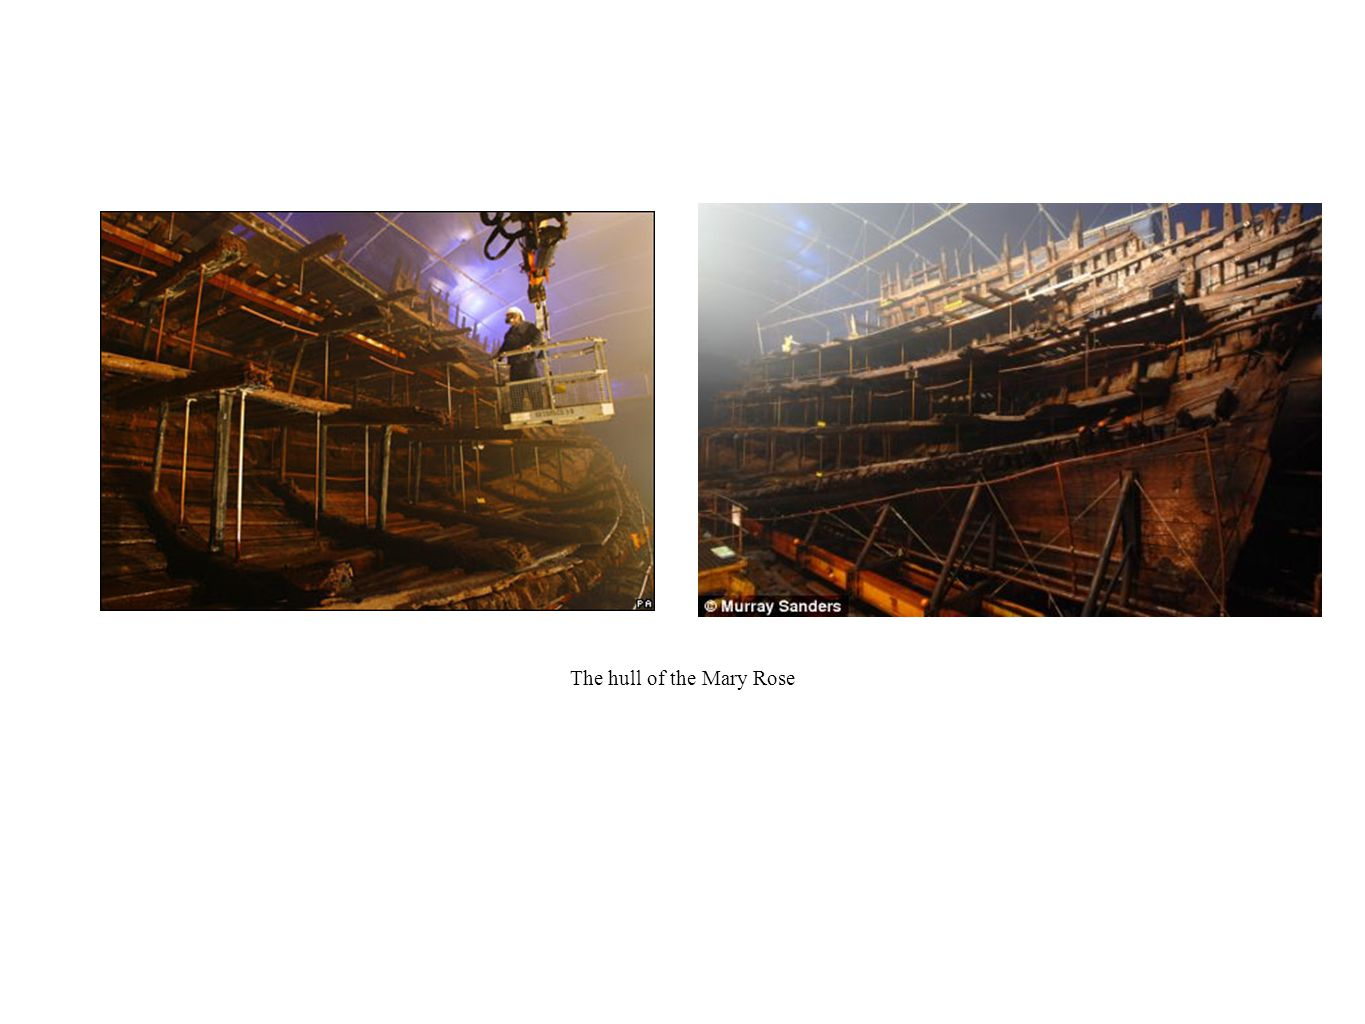 The hull of the Mary Rose